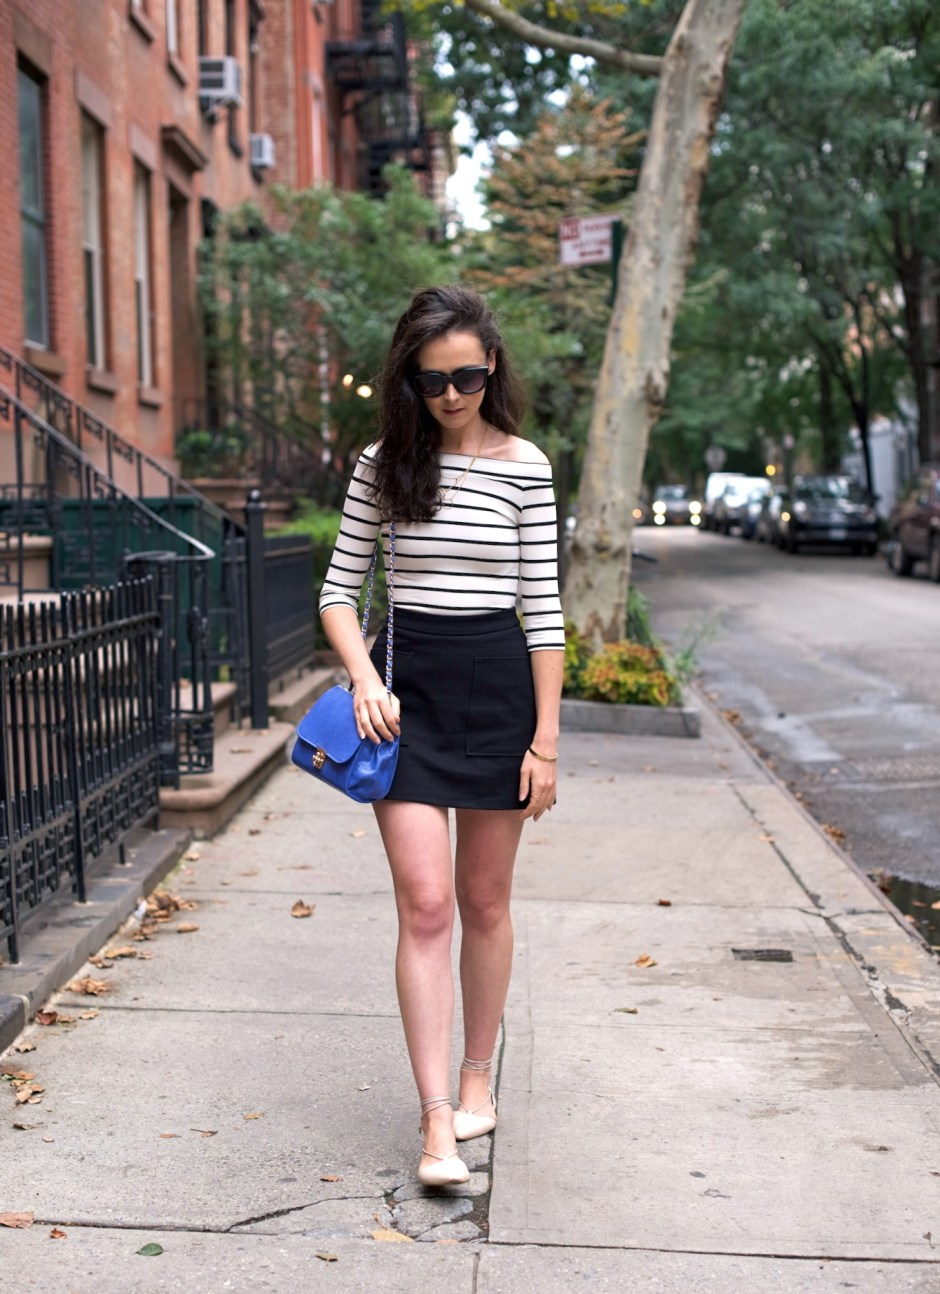 irish fashion: Stripe Top and Lace Up Flats